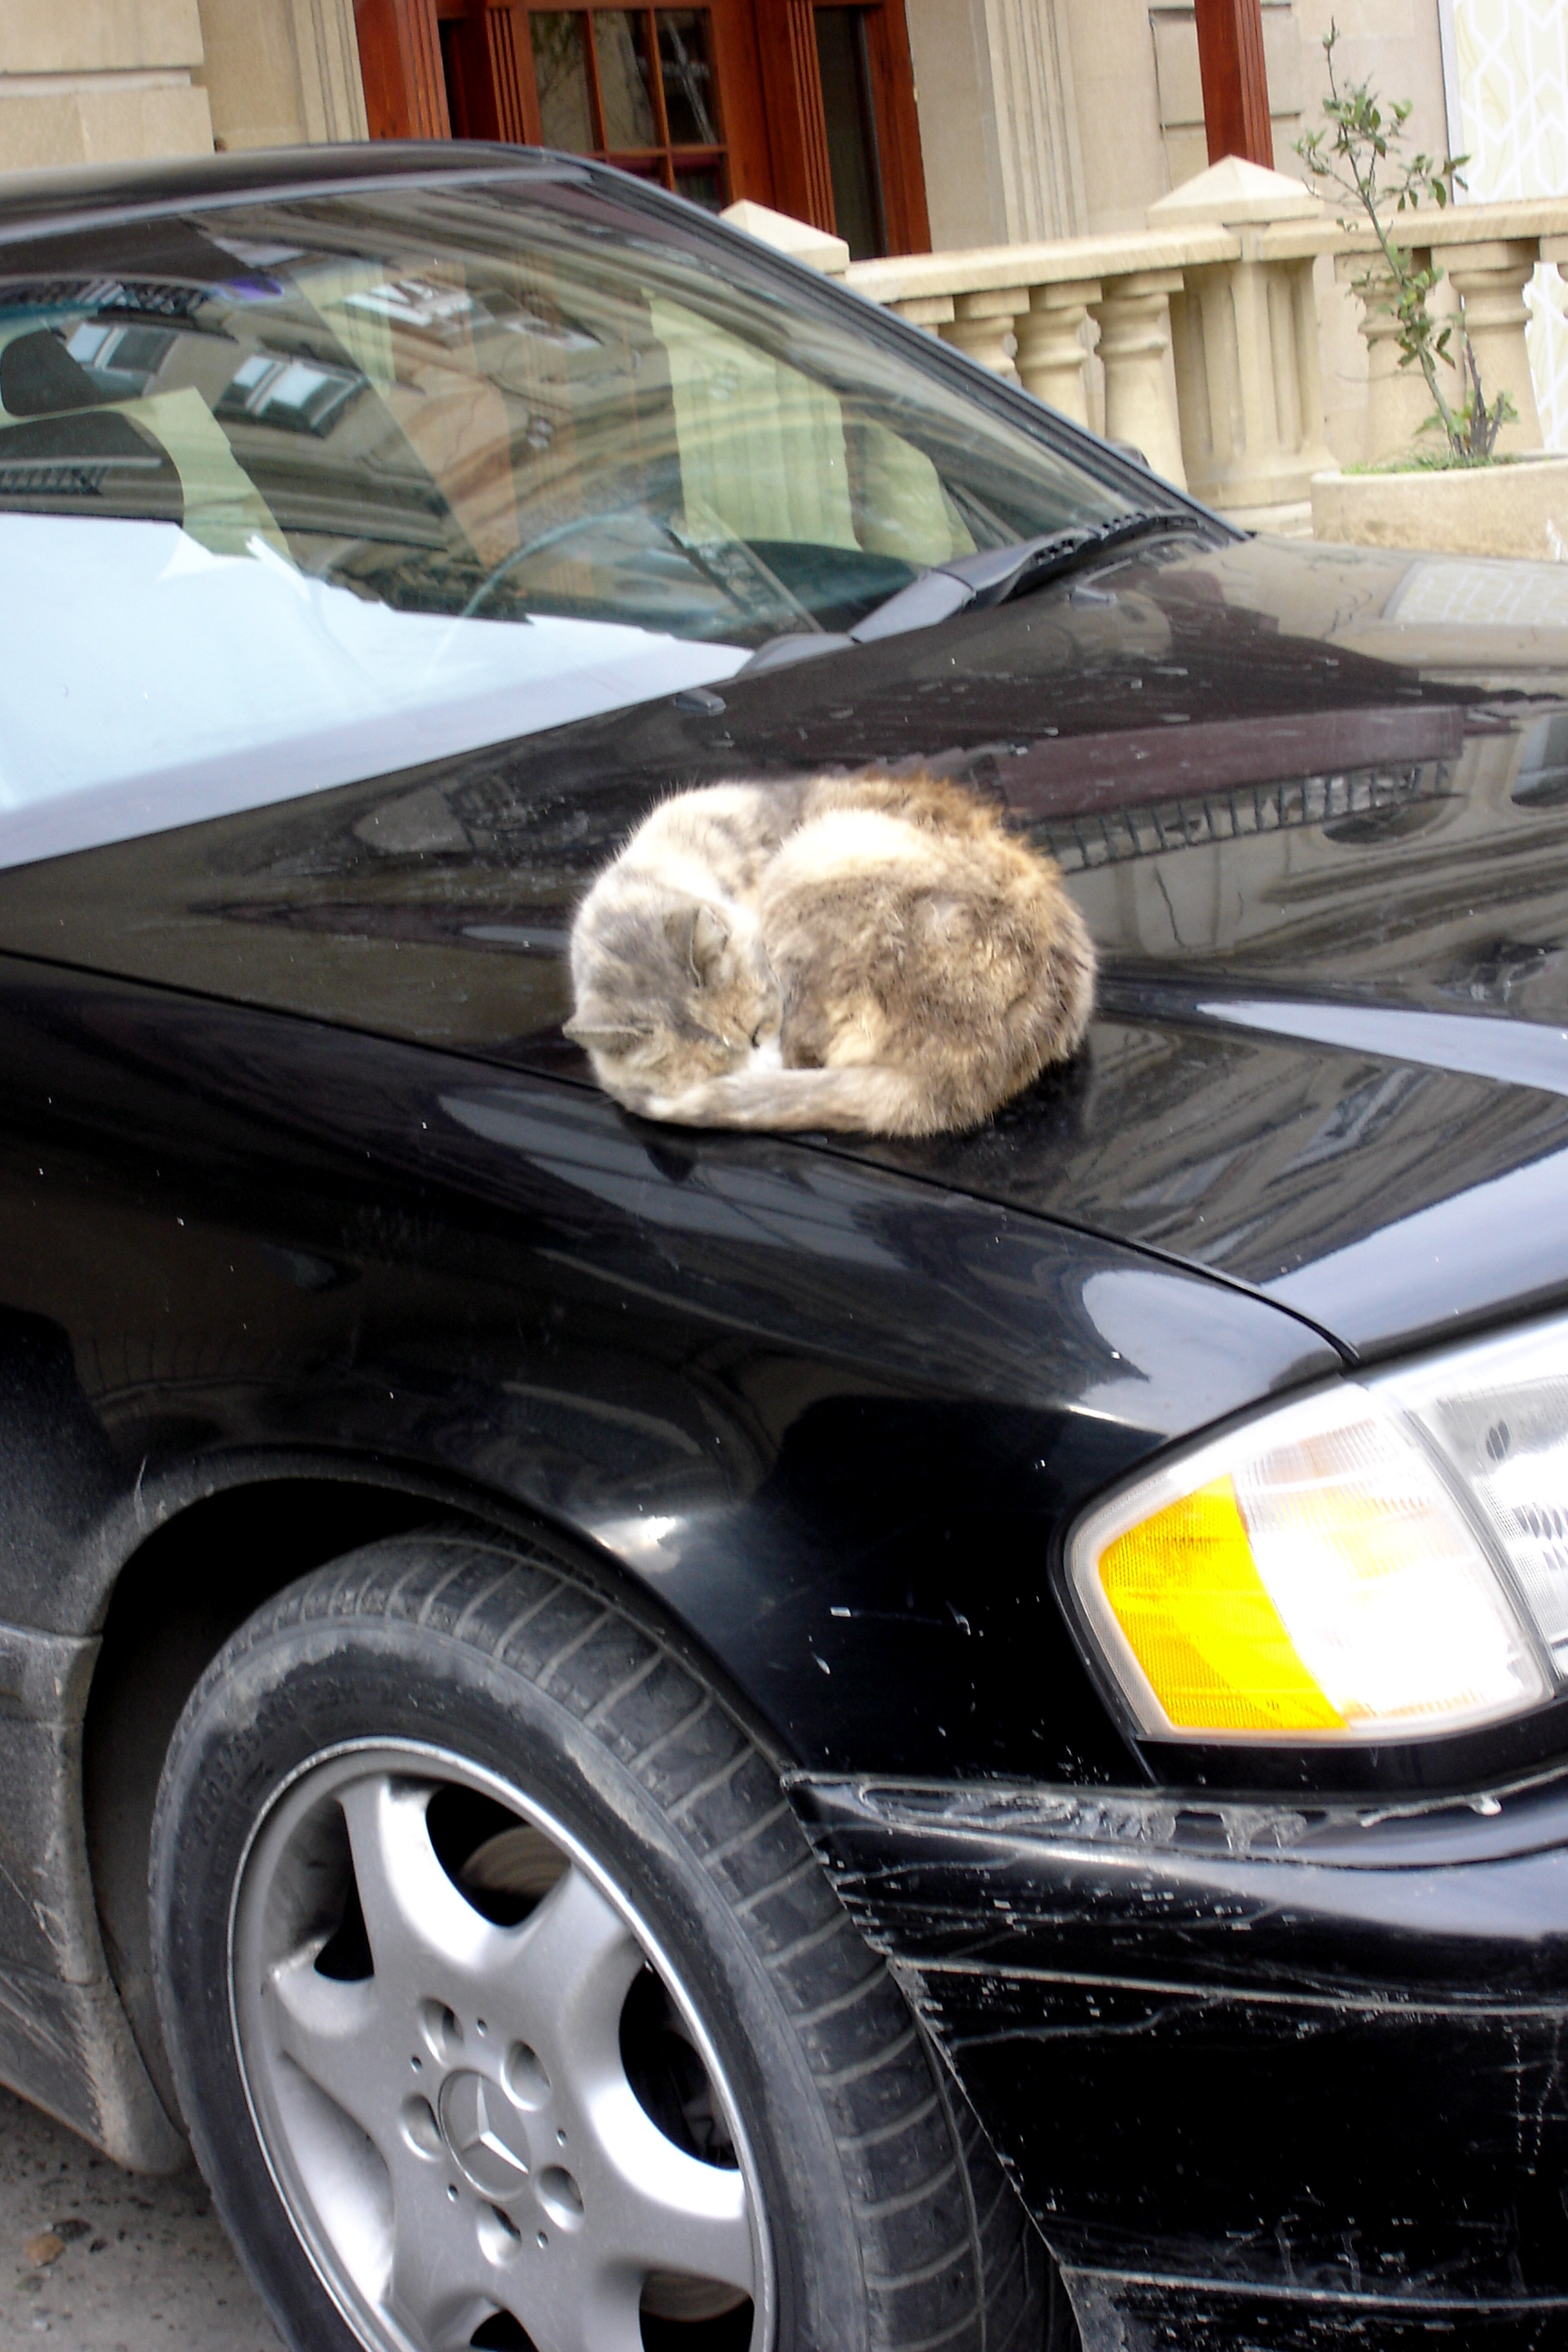 Cat on car.